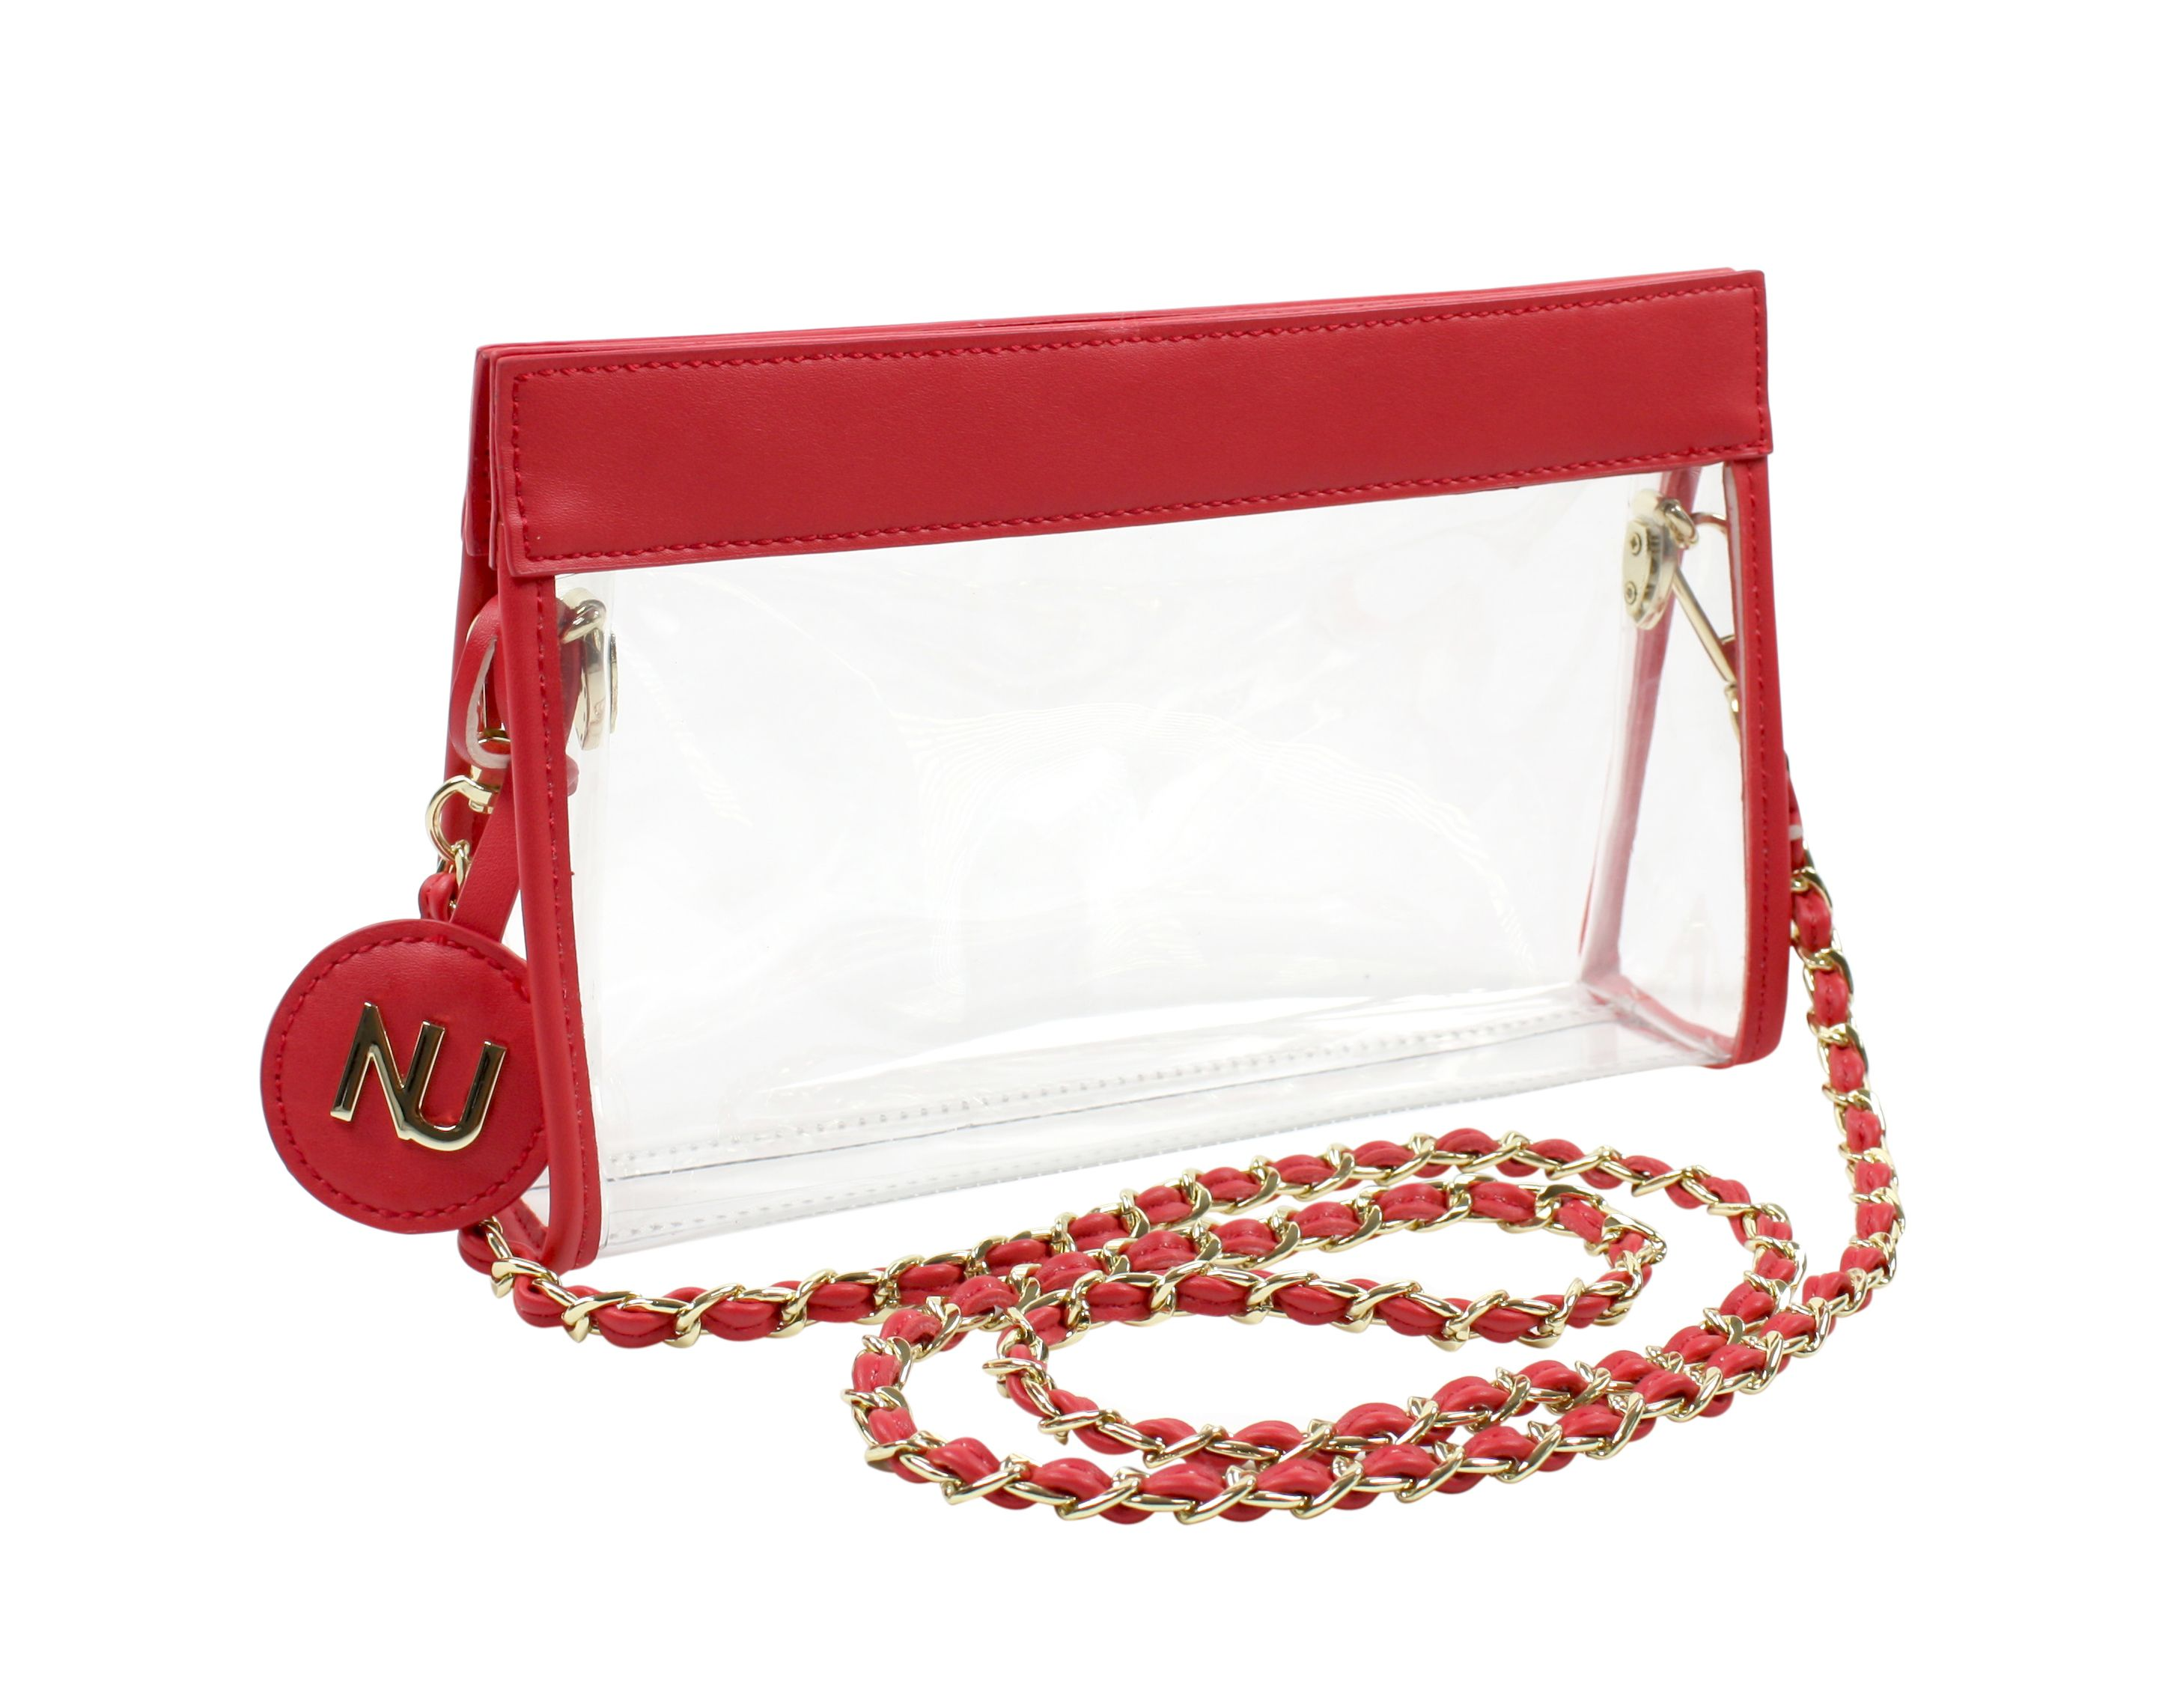 Nu Women Handbags Are Designed For Day And Concert Going Fashionistas Today